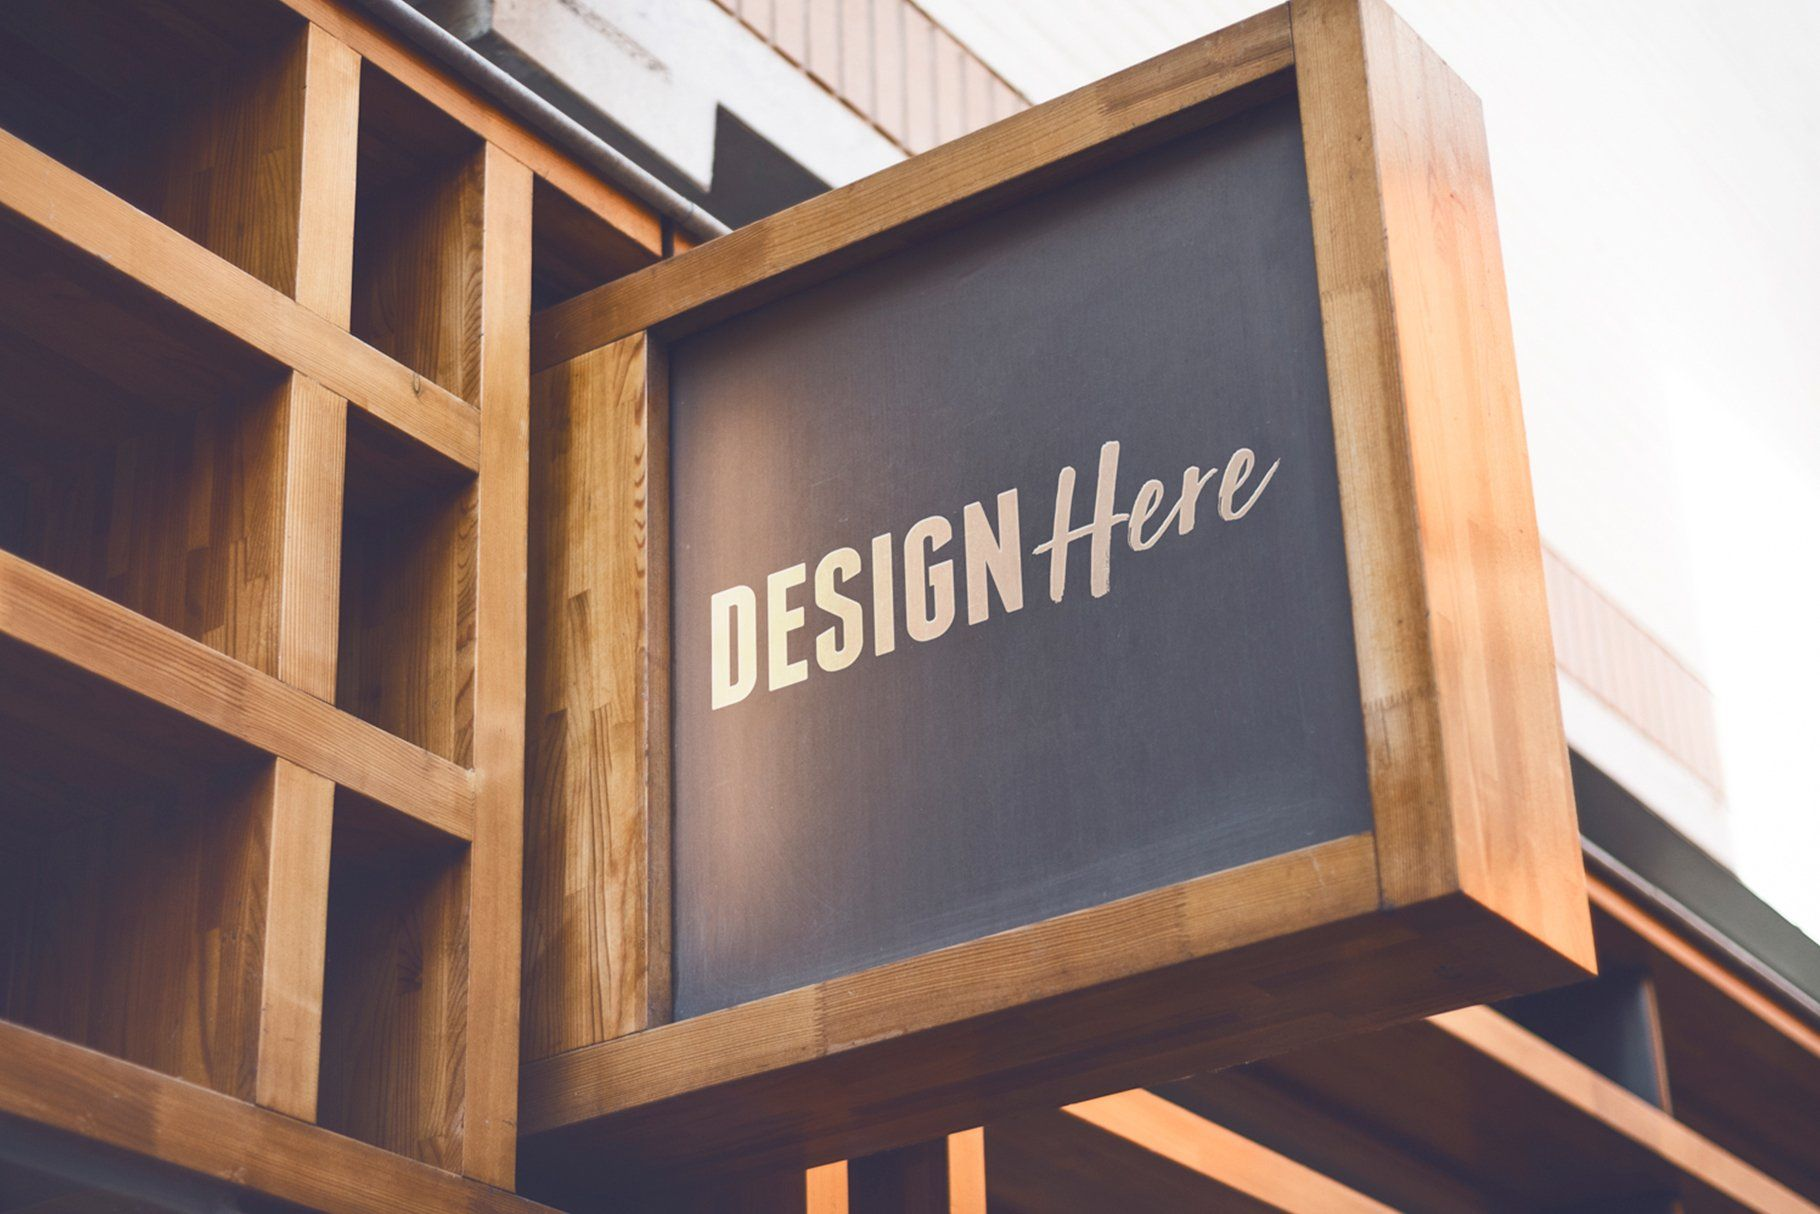 Wooden Luxurious Signboard Mockup Signboard Wooden Signage Shop Front Signs